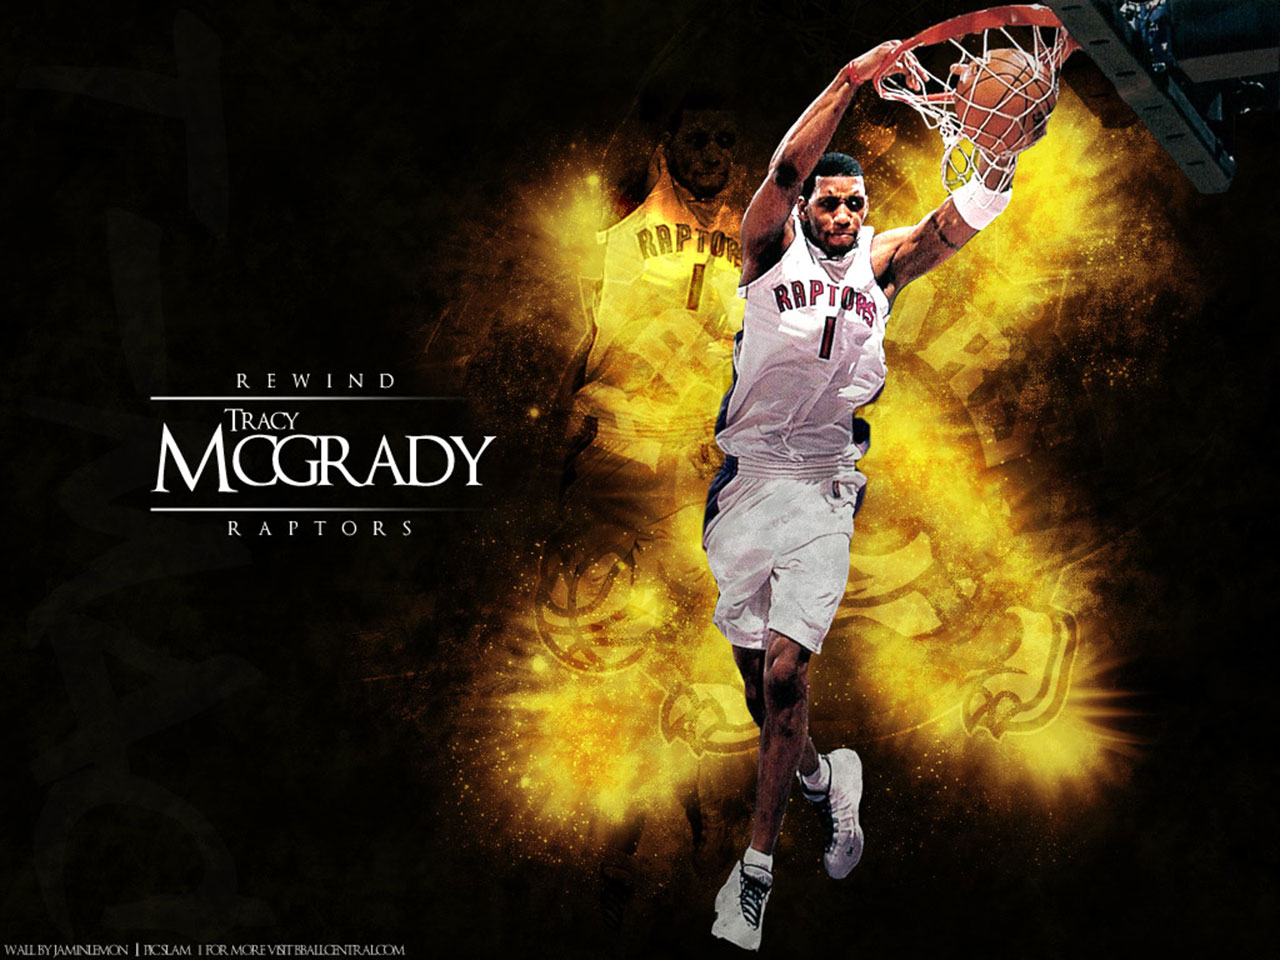 tracy mcgrady wallpaper desktop - photo #25